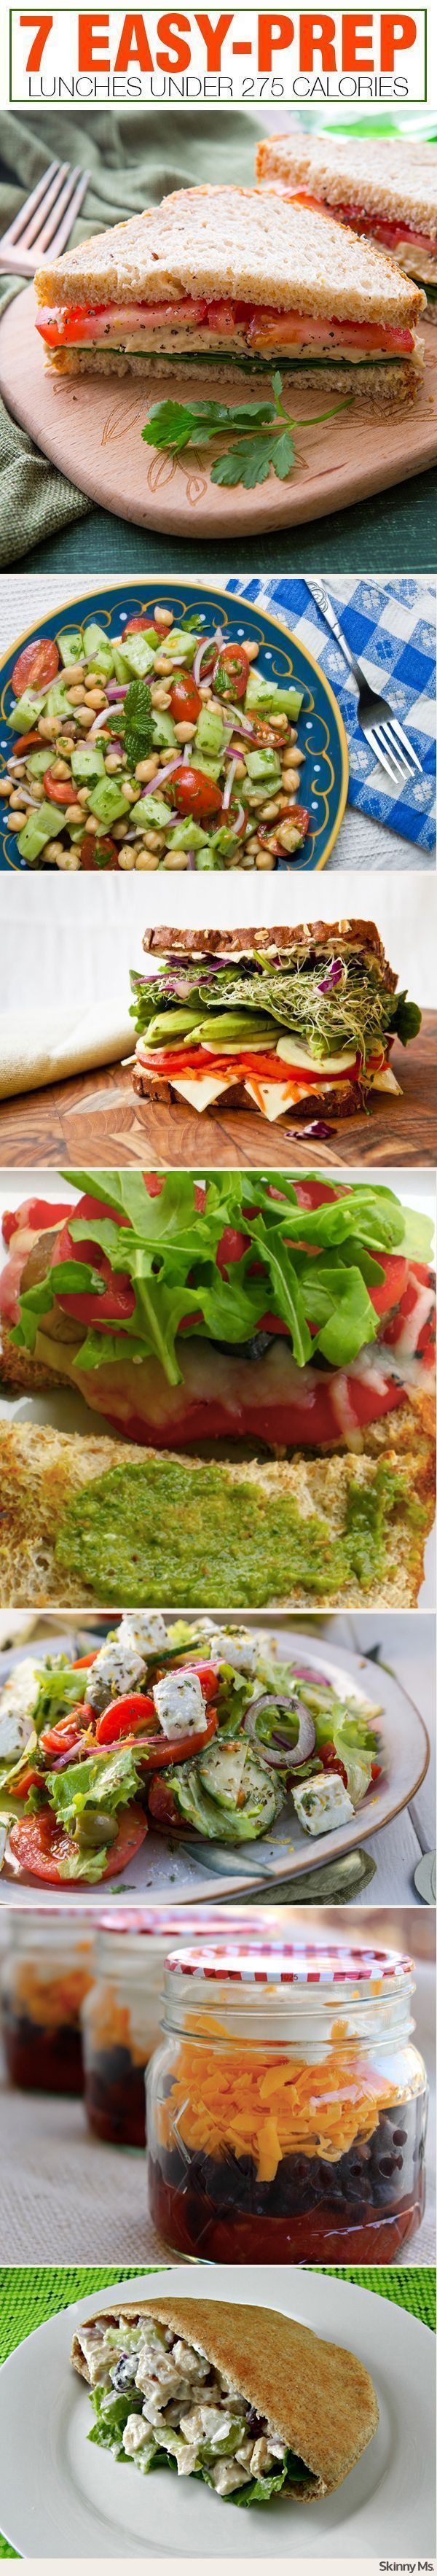 7 Easy-Prep Lunches Under 275 Calories perfect for weekday lunches! #easylunches #lowcalorie #lunch